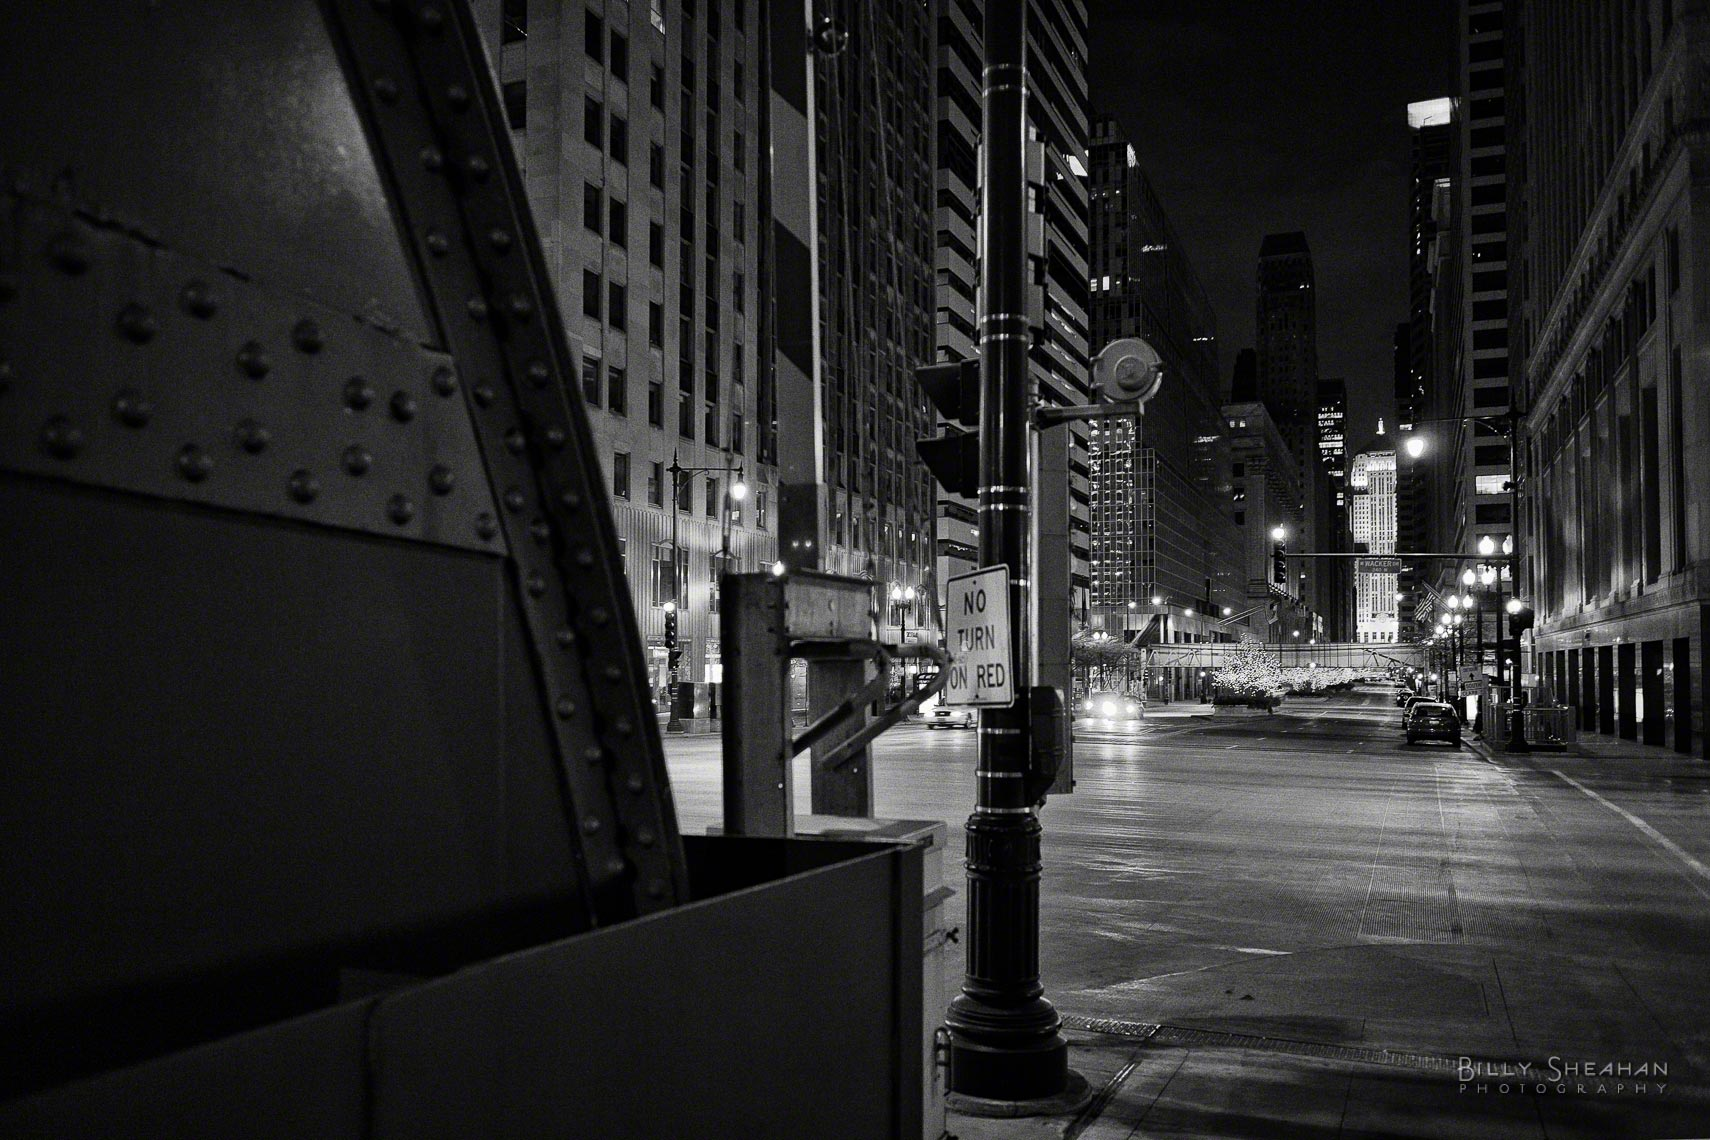 LaSalle_Wacker_Night_Chicago_26Nov2006_084_BW_D.jpg